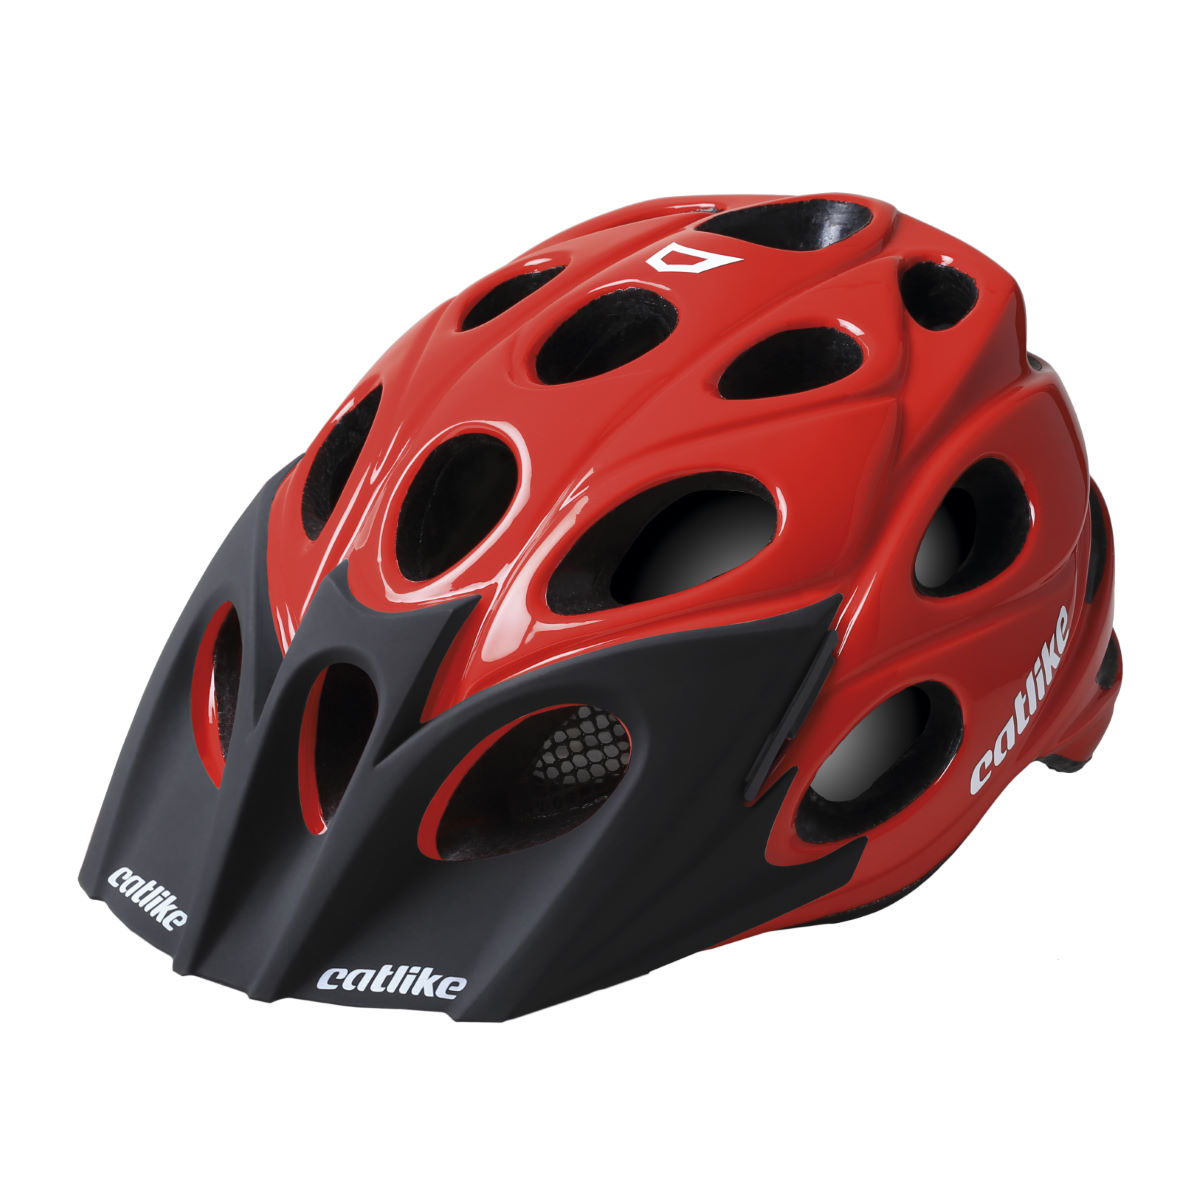 Casque VTT Catlike Leaf - L Red Glossy Casques